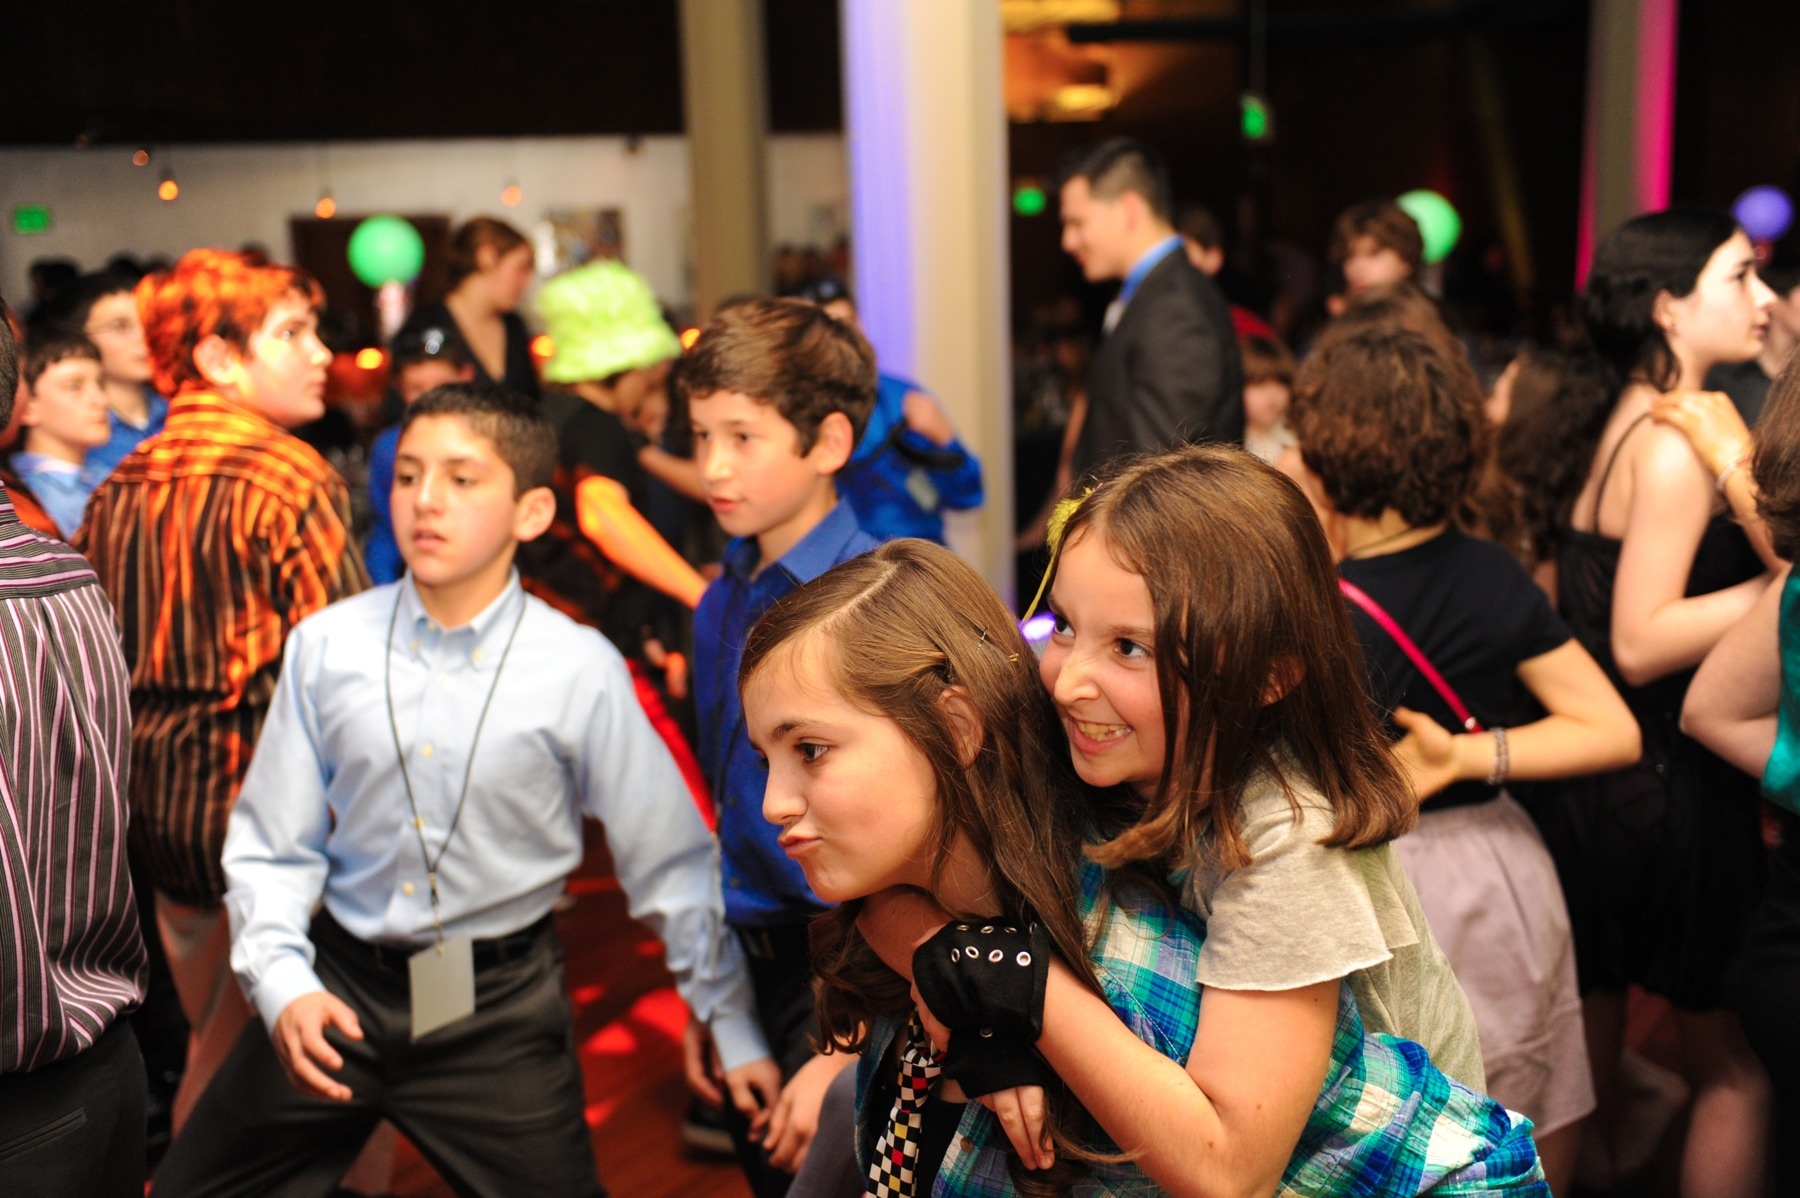 bat_mitzvah_bar_mitzvah_san_francisco_bay_area_photographer_party_photography_130